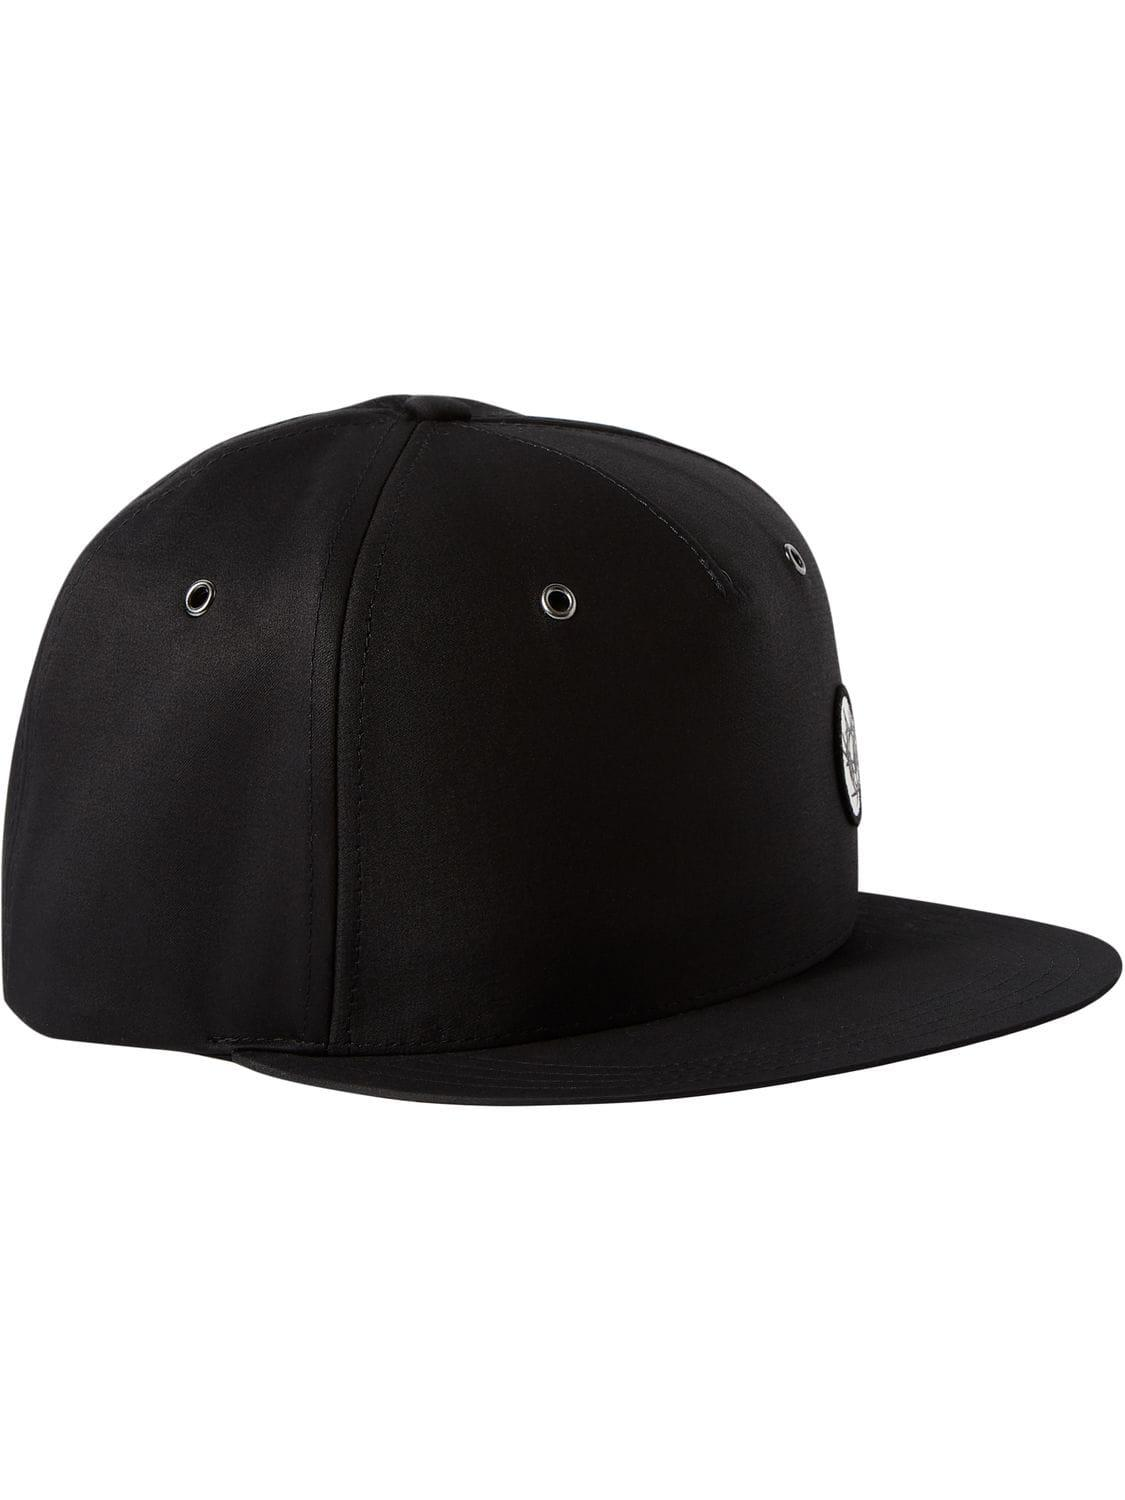 4e6c5d17b7d Lyst - Scotch   Soda Cotton Cap Felix The Cat in Black for Men